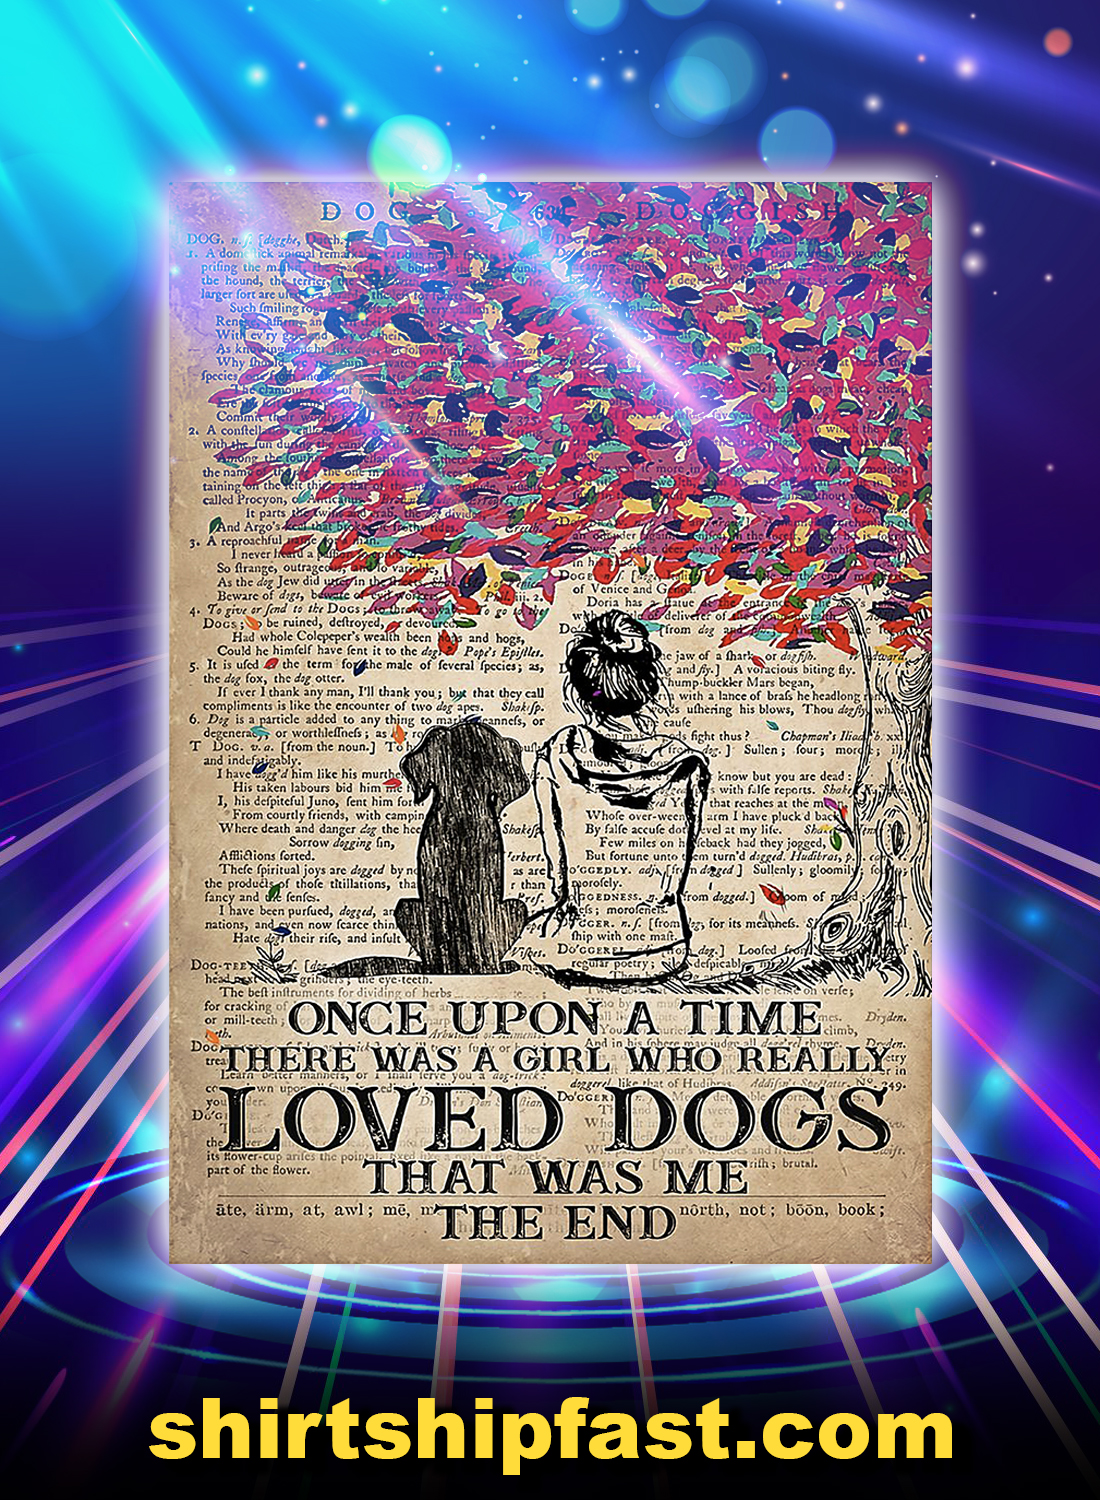 Once upon a time there was a girl loved dogs poster